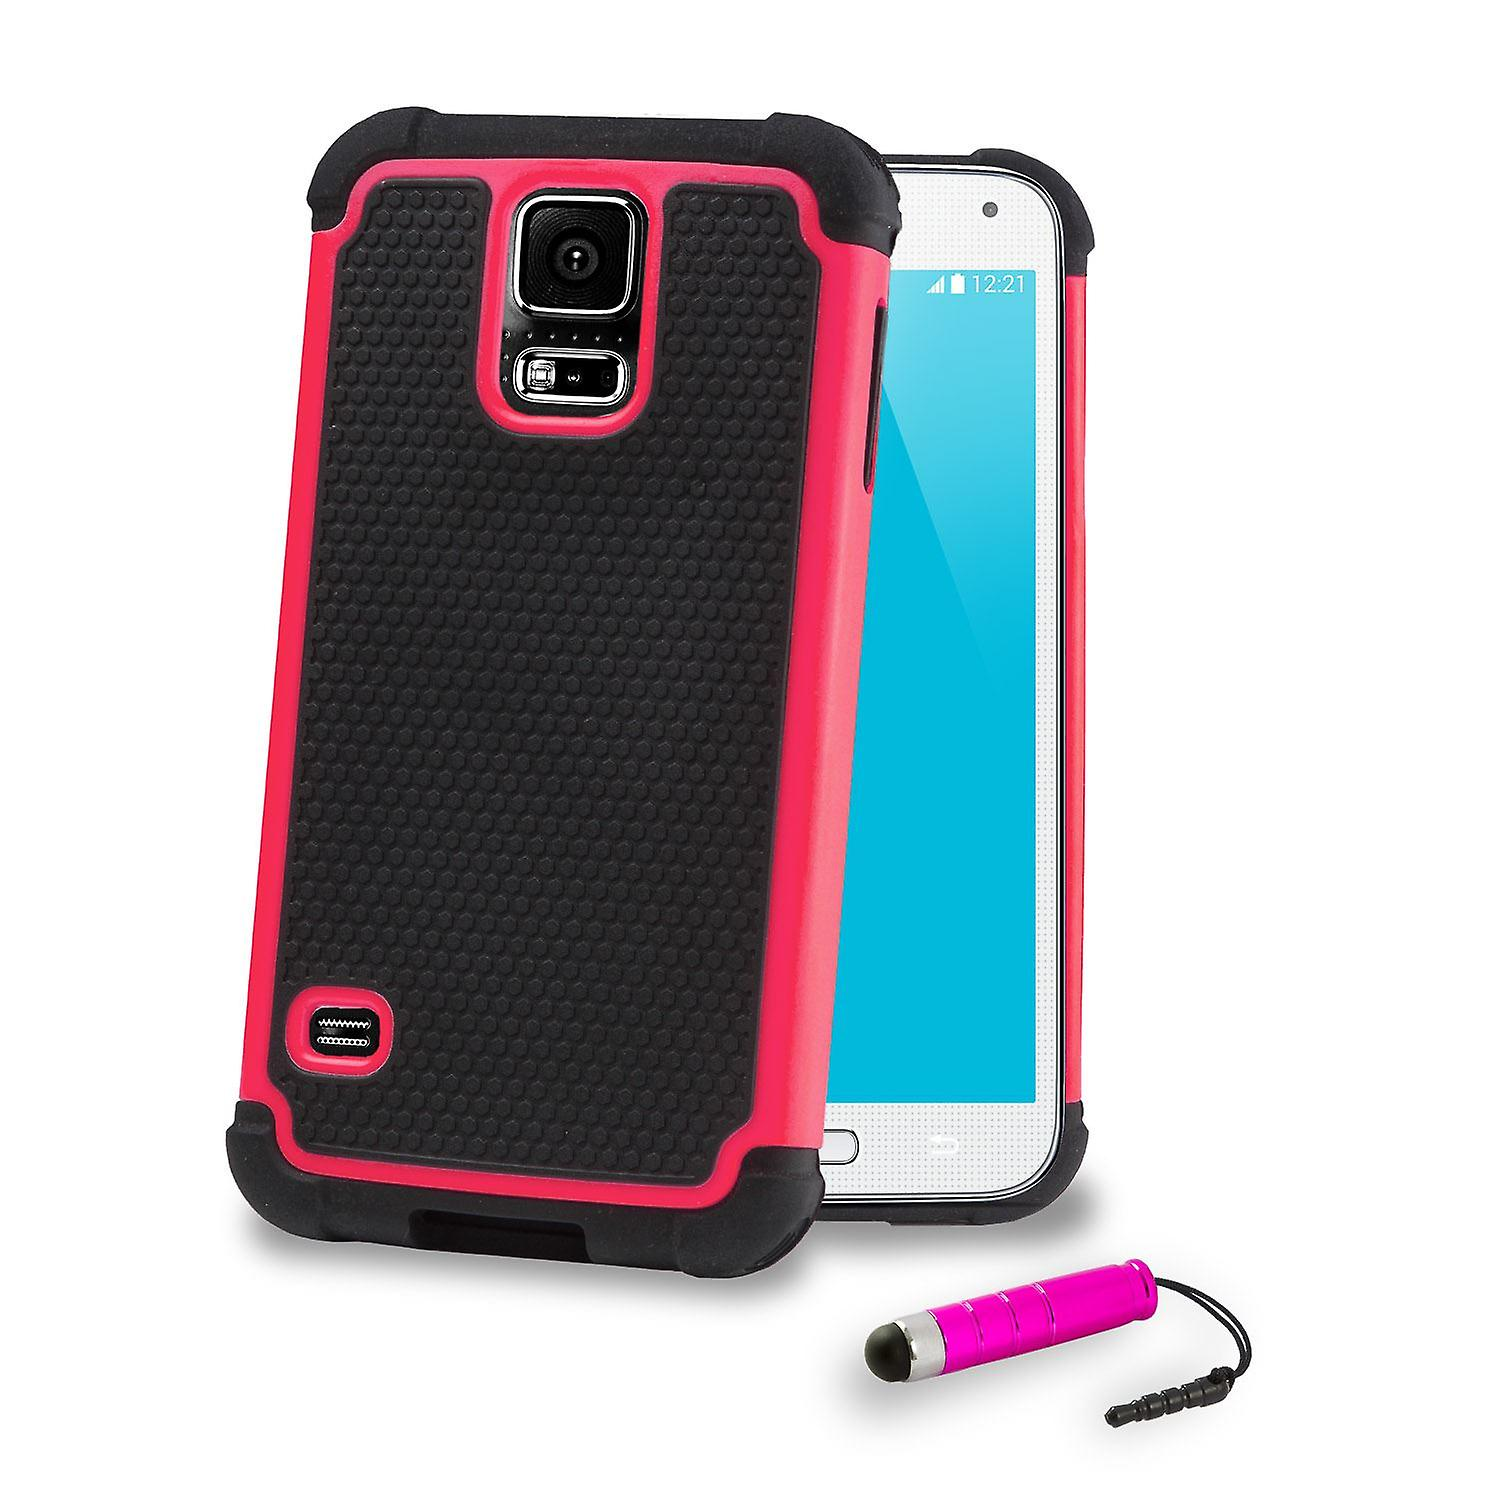 Shock Proof Case + stylus for Samsung Galaxy S5 (SM-G900) - Hot Pink